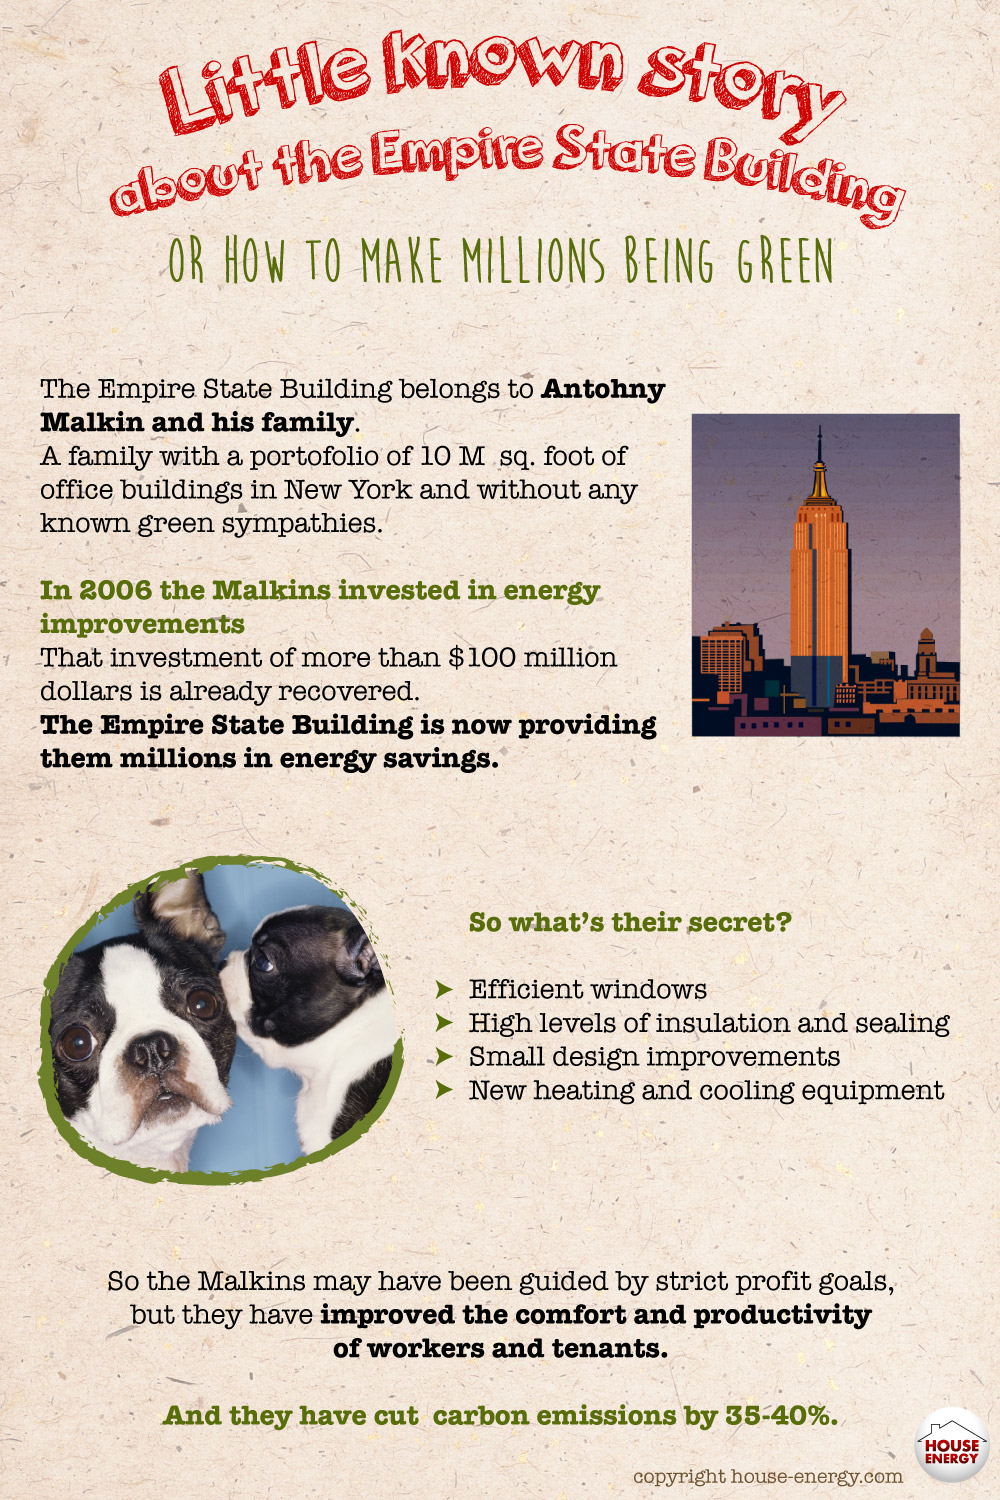 Empire State Building: making money being green